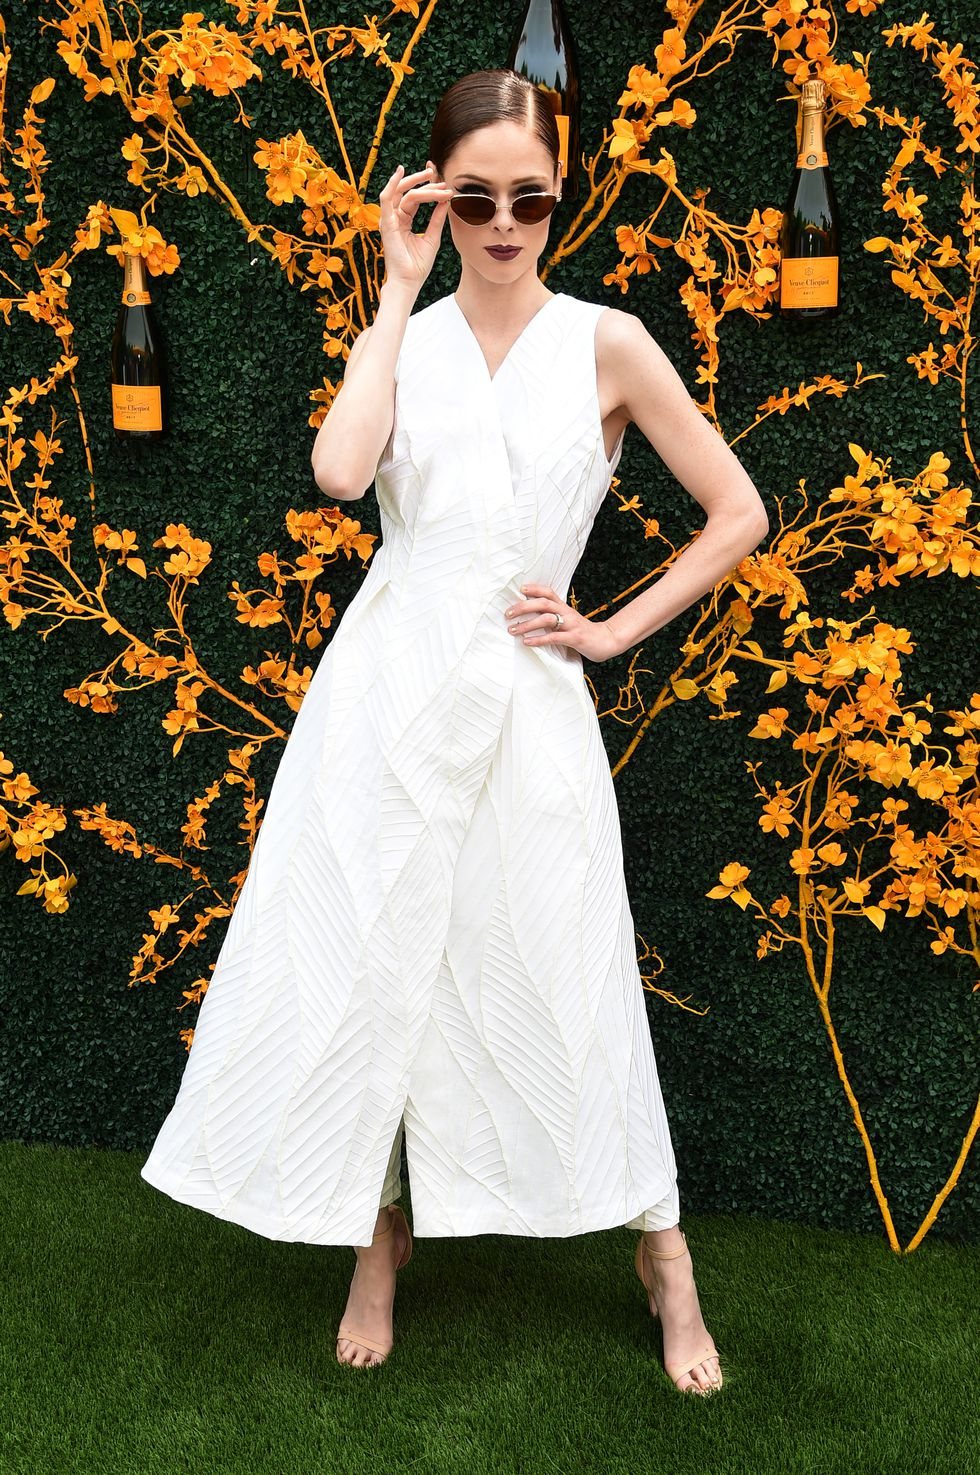 coco-rocha-attends-the-12th-annual-veuve-clicquot-polo-news-photo-1153077085-1559487732.jpg